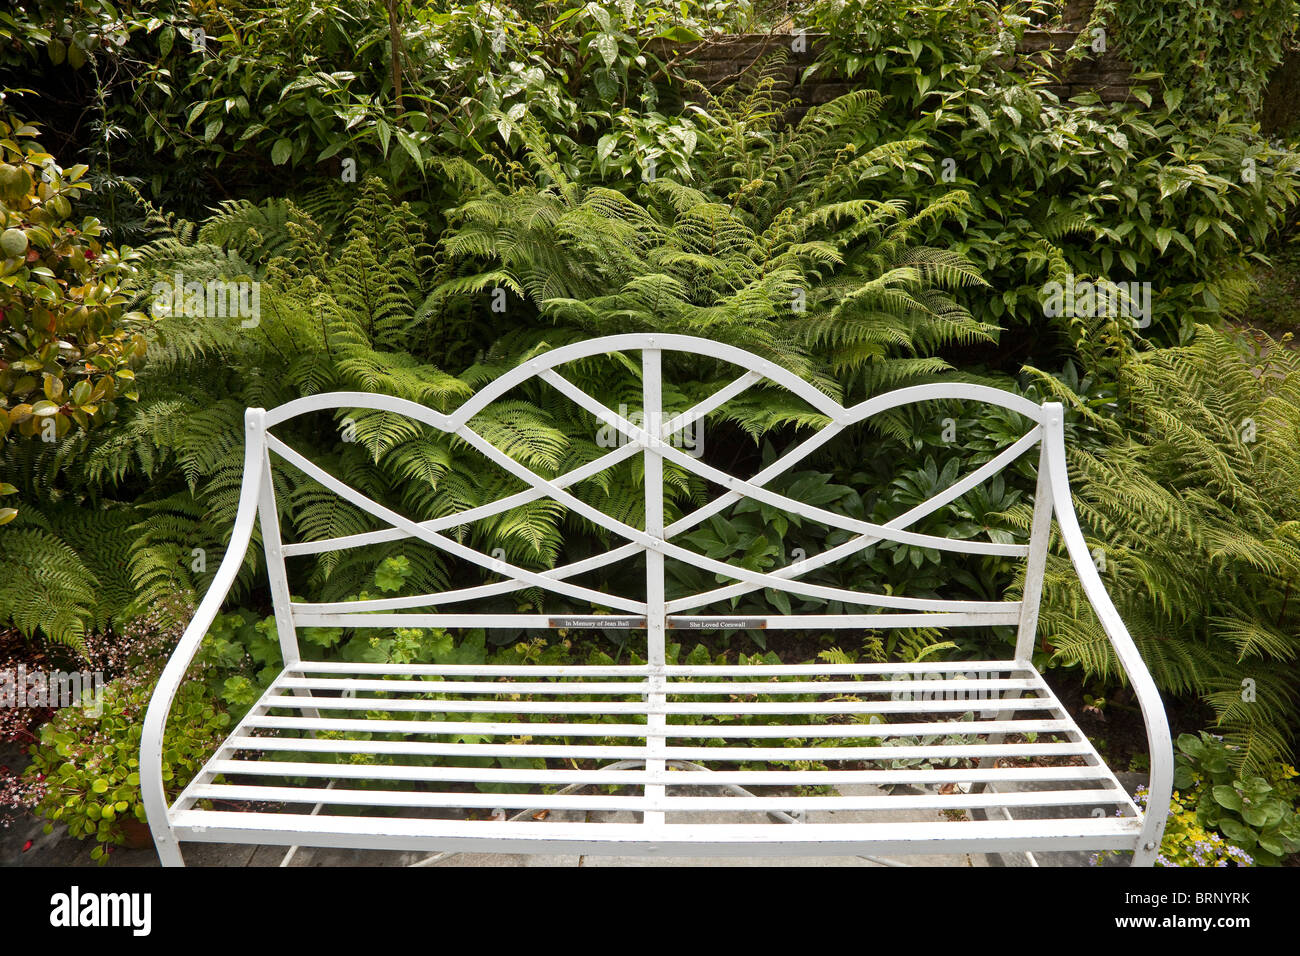 Marvelous White Metal Ornate Garden Bench, Inviting With A Fern Background